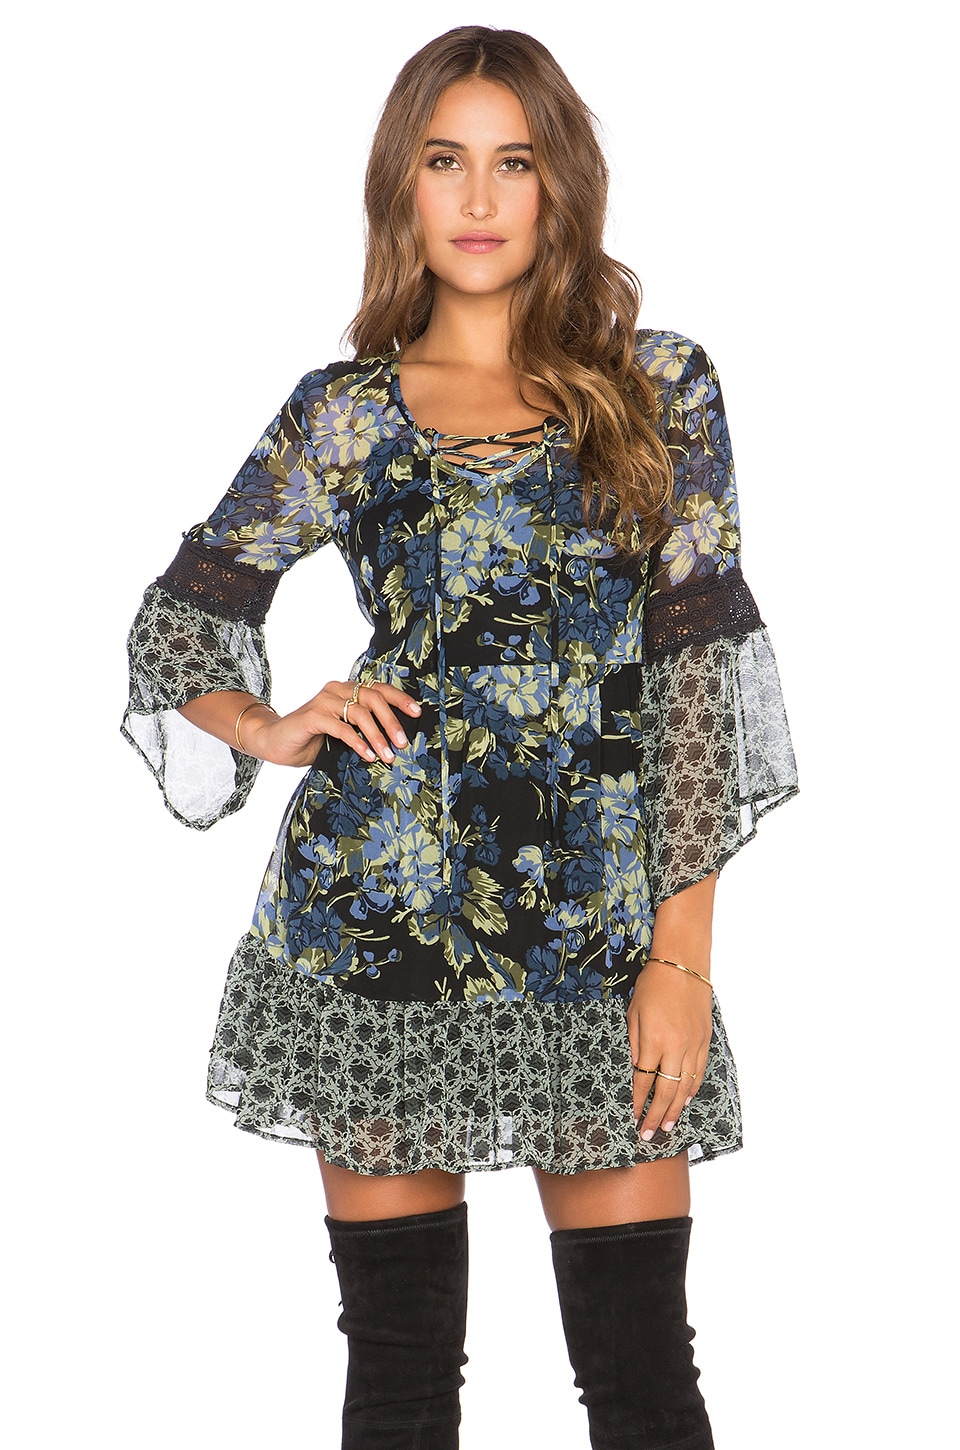 Band of Gypsies Lace Front Mini Dress in Black & Peri